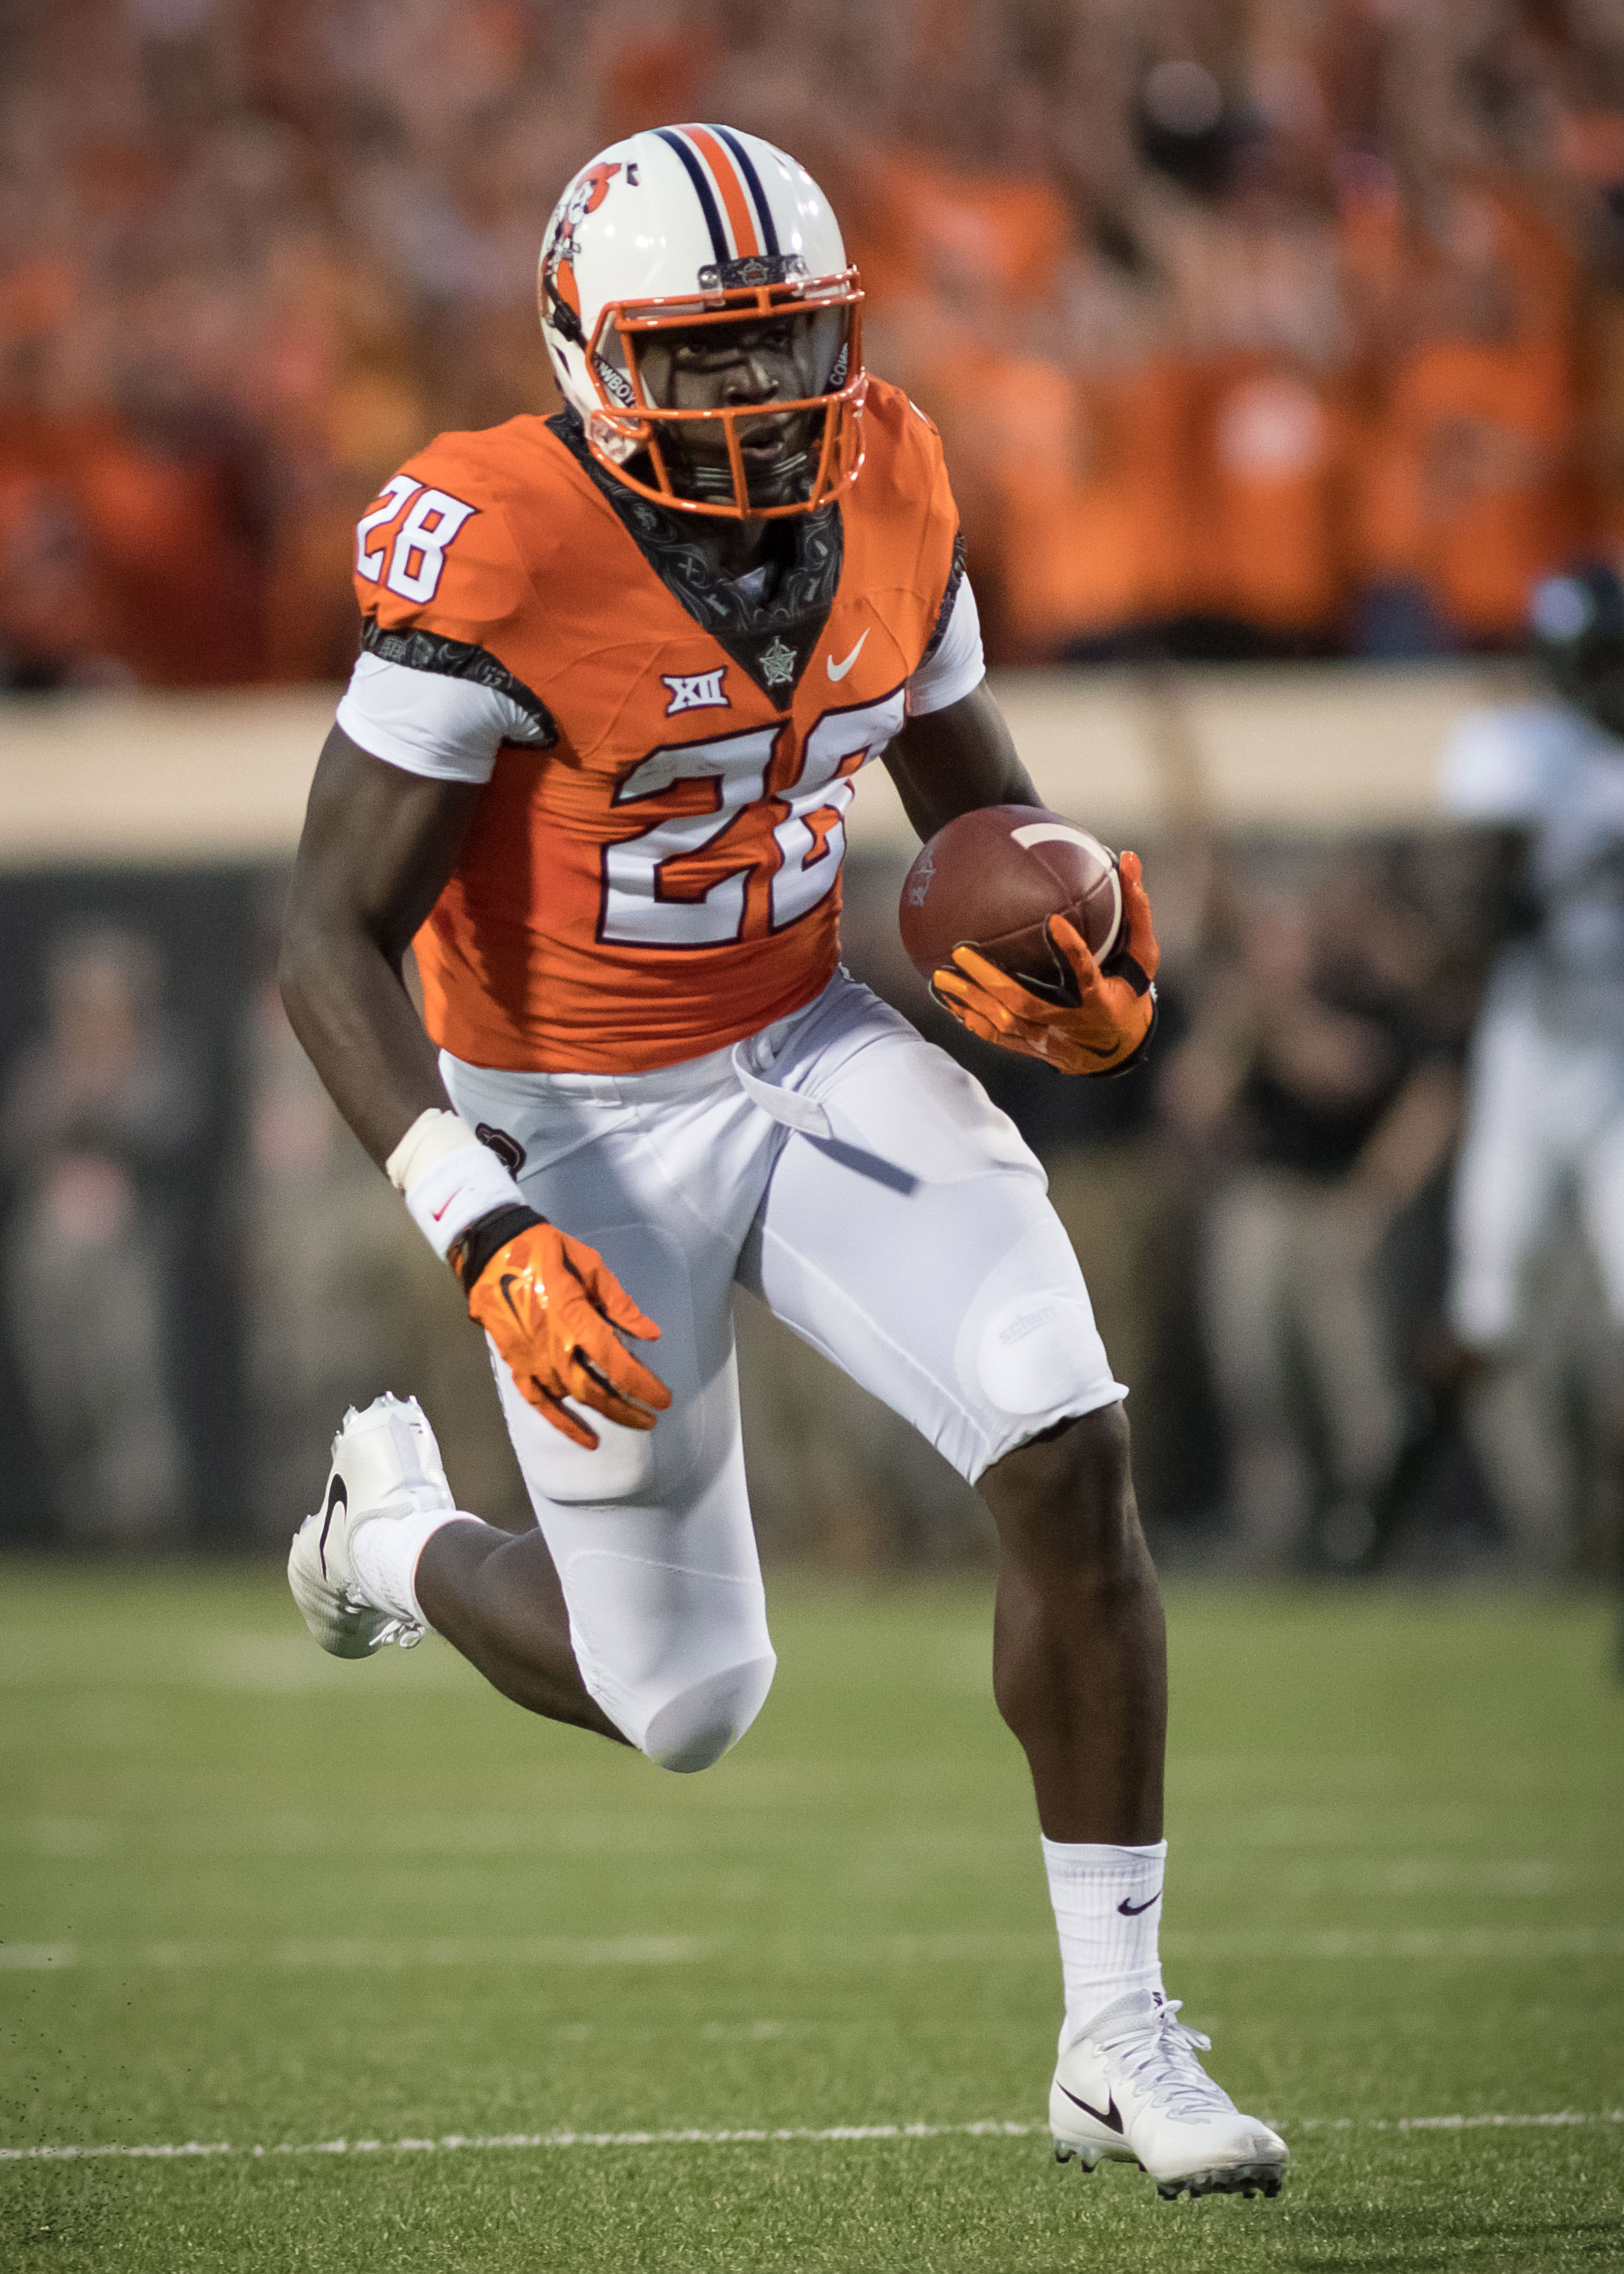 c4d17de9101 The Steelers have signed their second-round pick (No. 60 overall) wide receiver  James Washington to a four-year deal